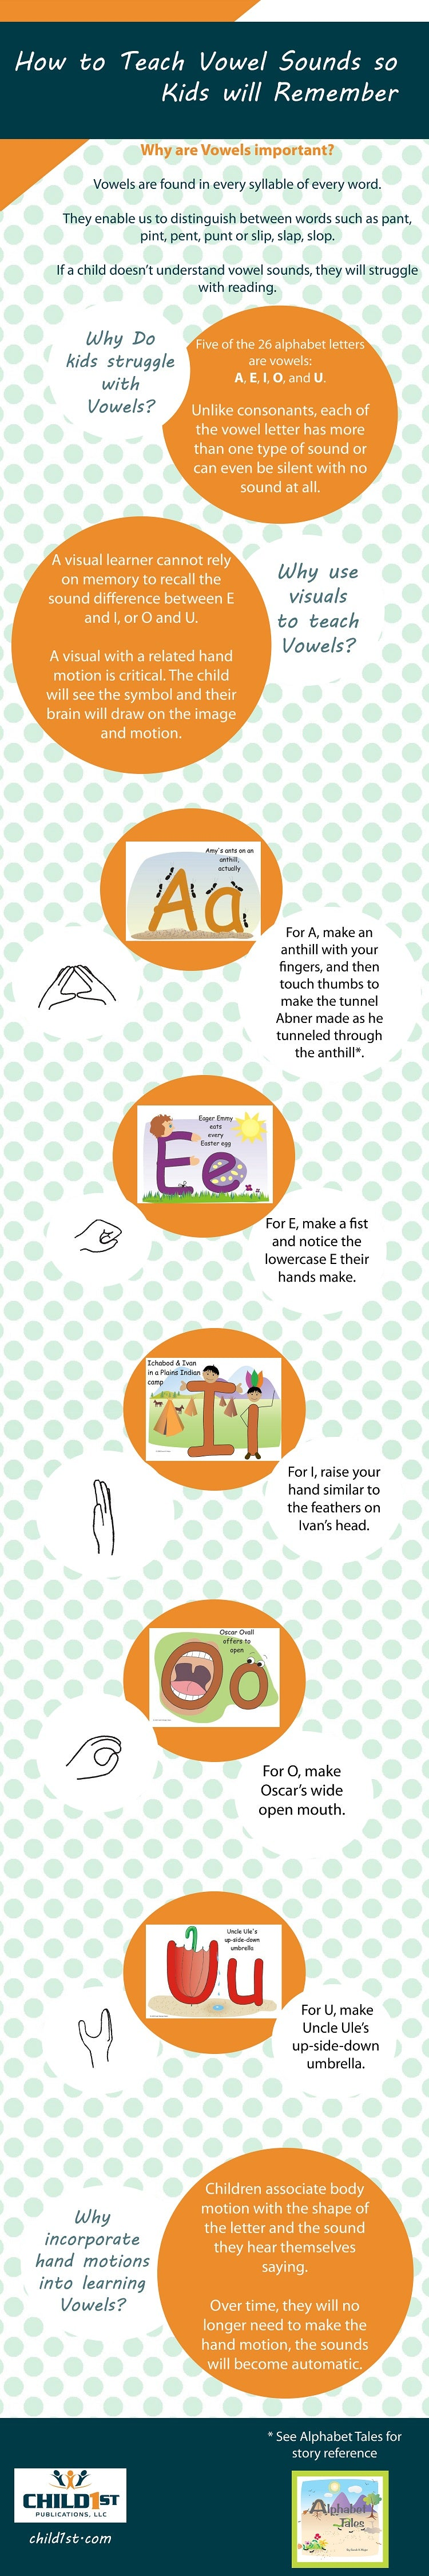 How To Teach Vowel Sounds So Kids Will Remember Infographic Child1st Publications